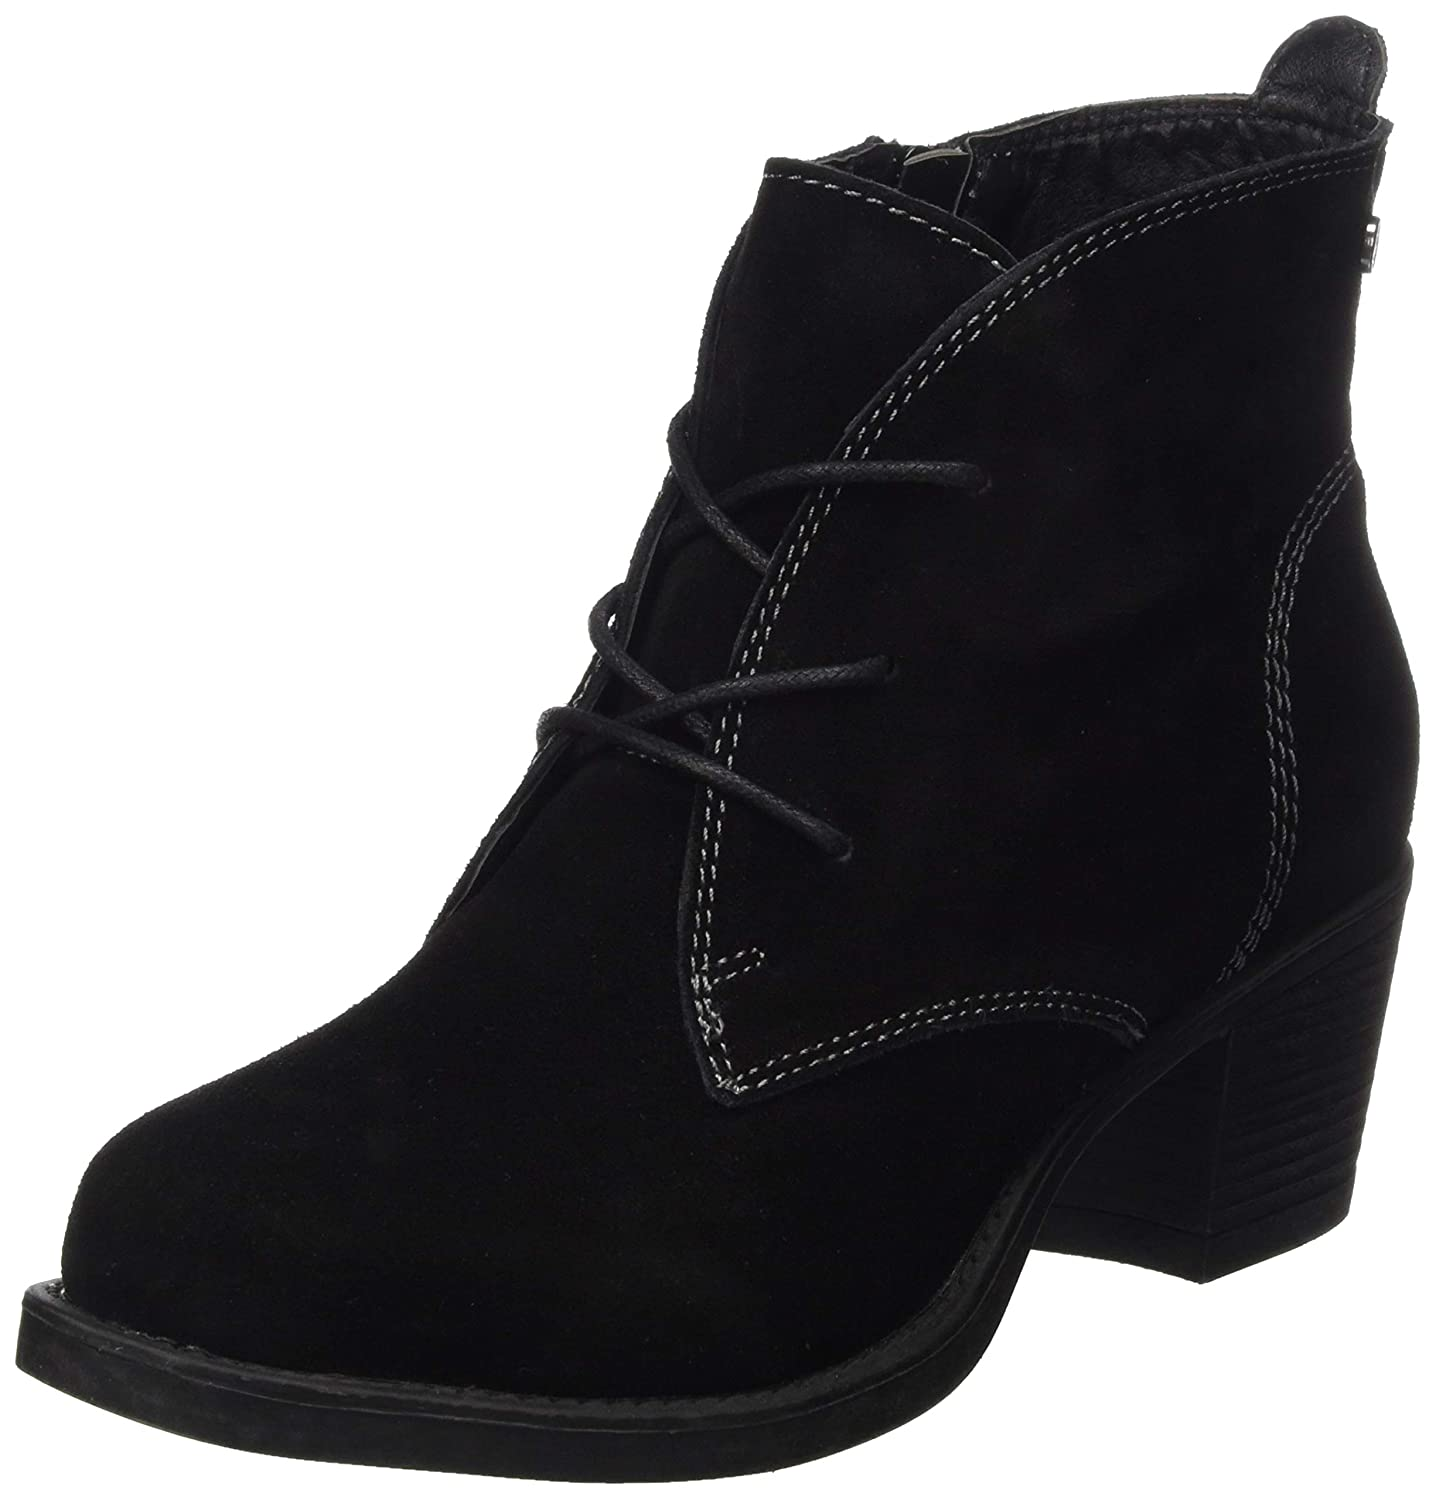 - Hush Puppies Womens Moscow Laced Heel Boot Black Size UK 4 EU 37